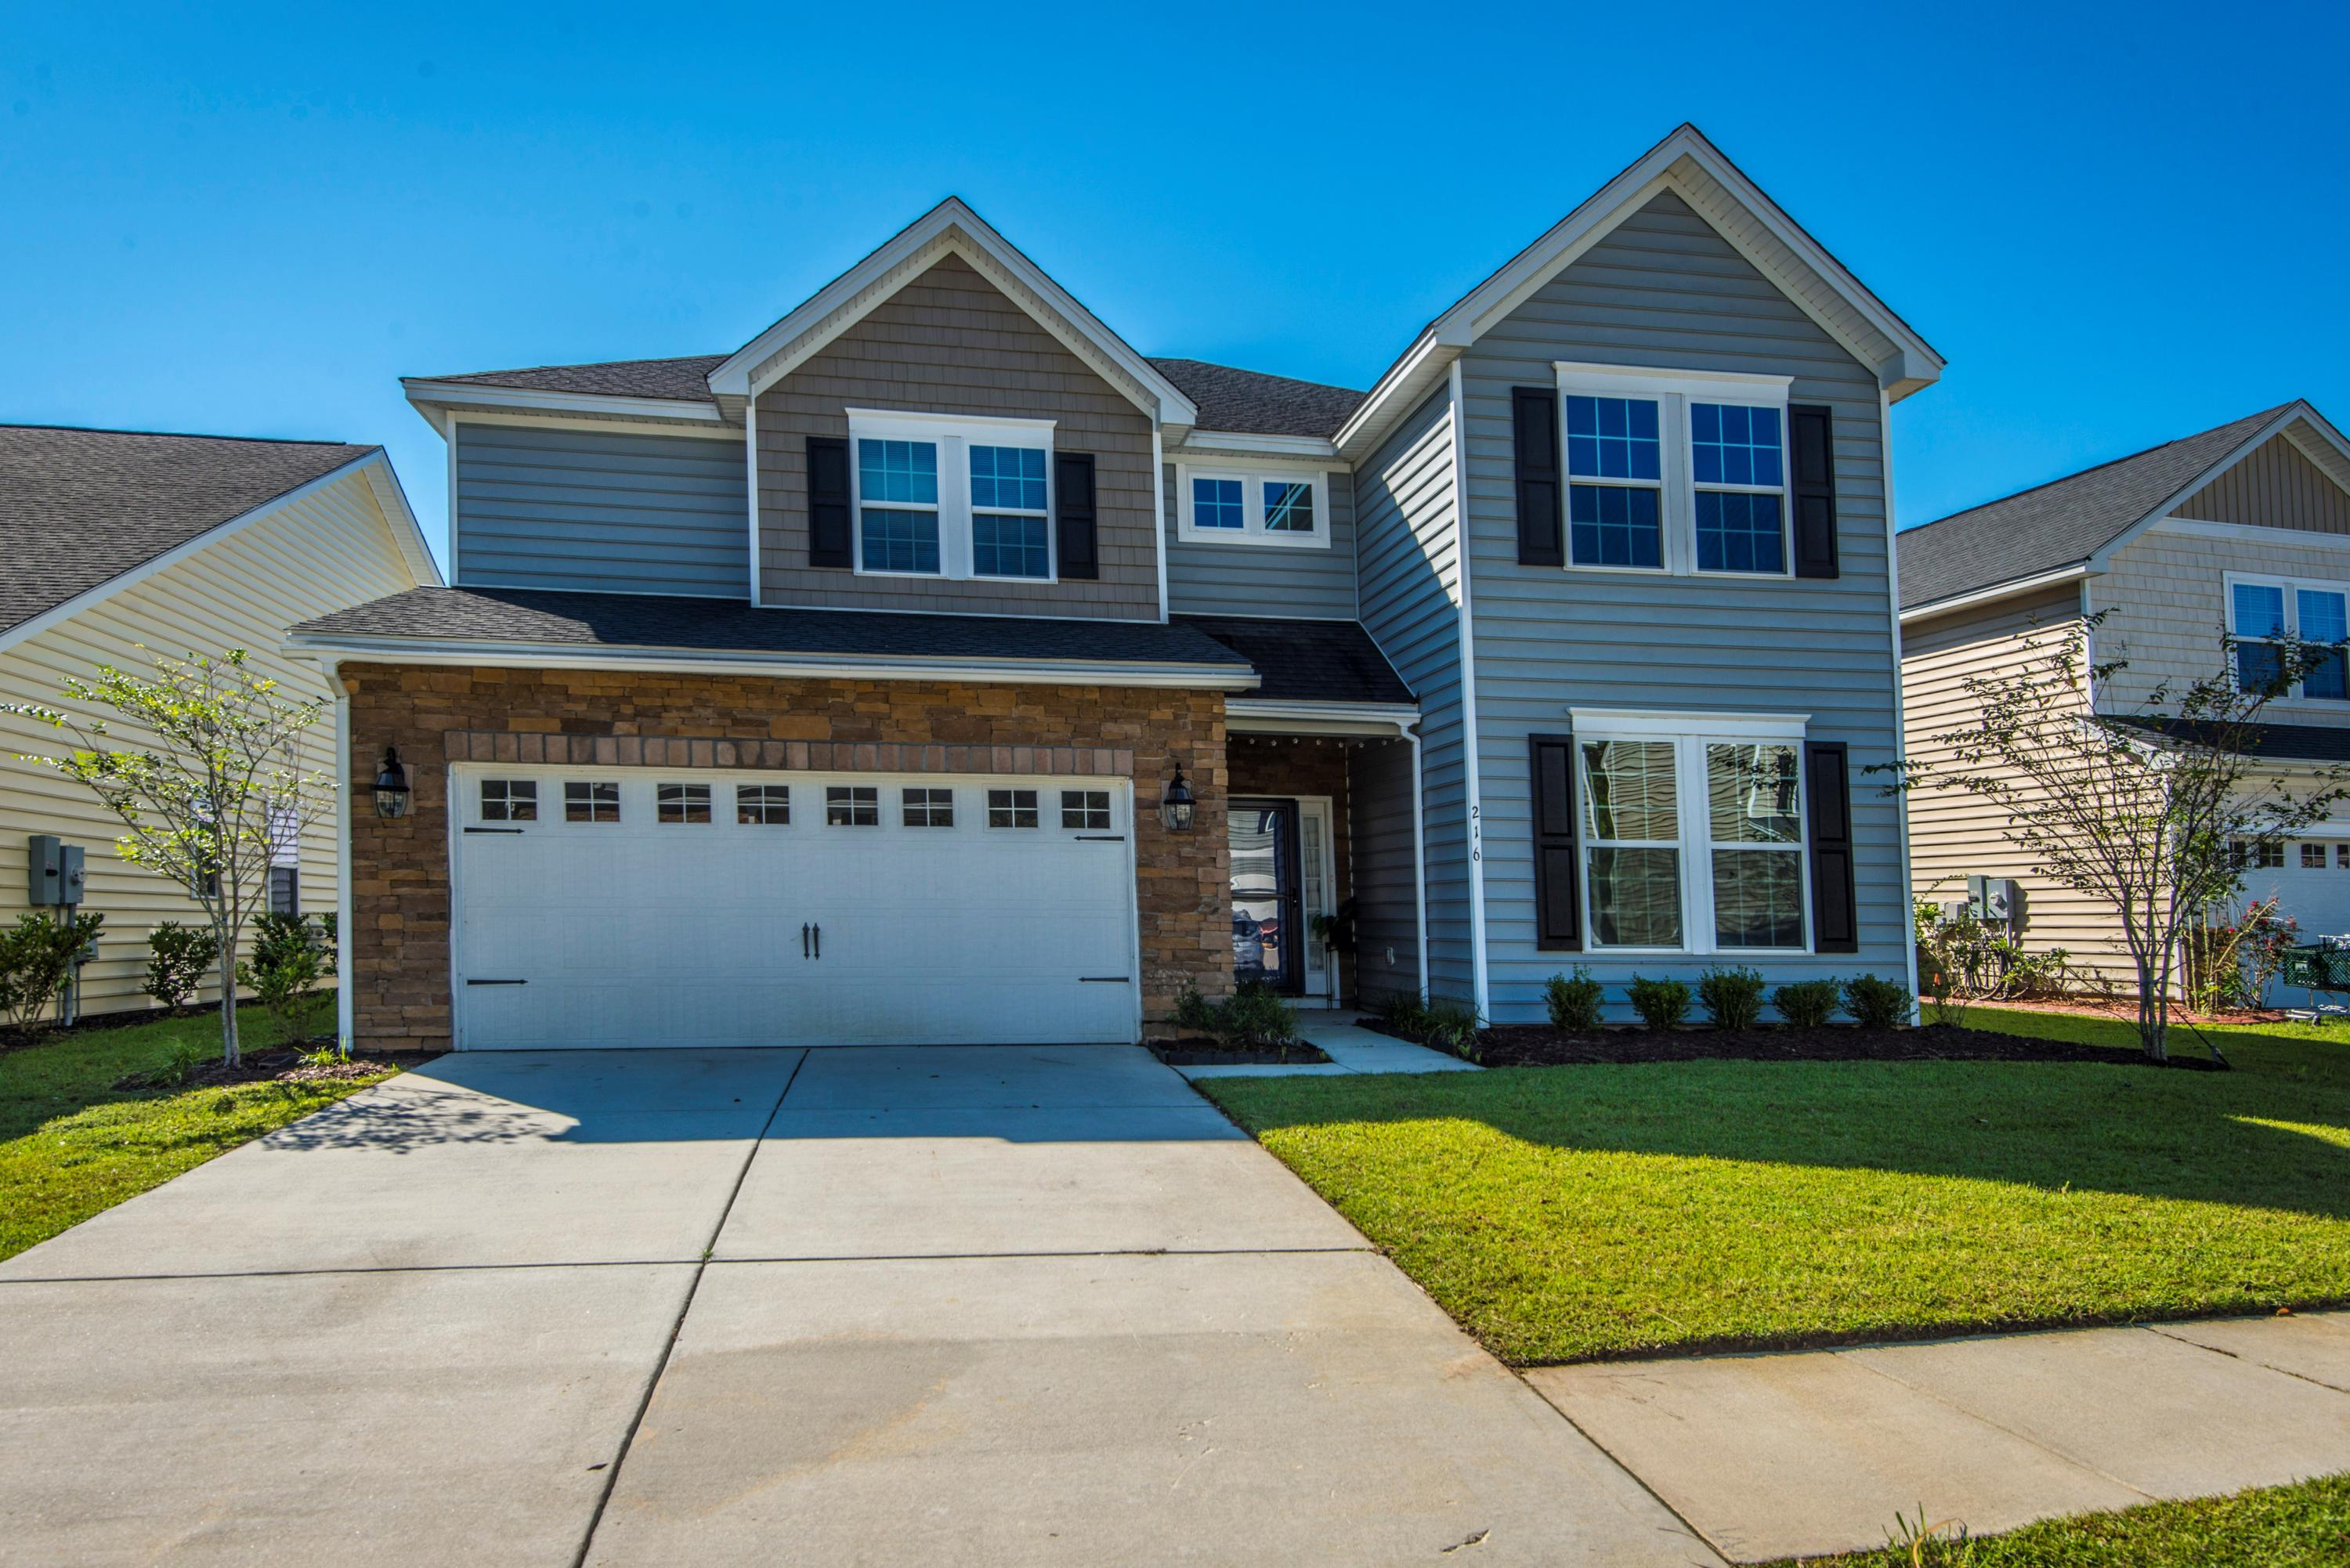 Wentworth Hall Homes For Sale - 216 Wexford, Summerville, SC - 10